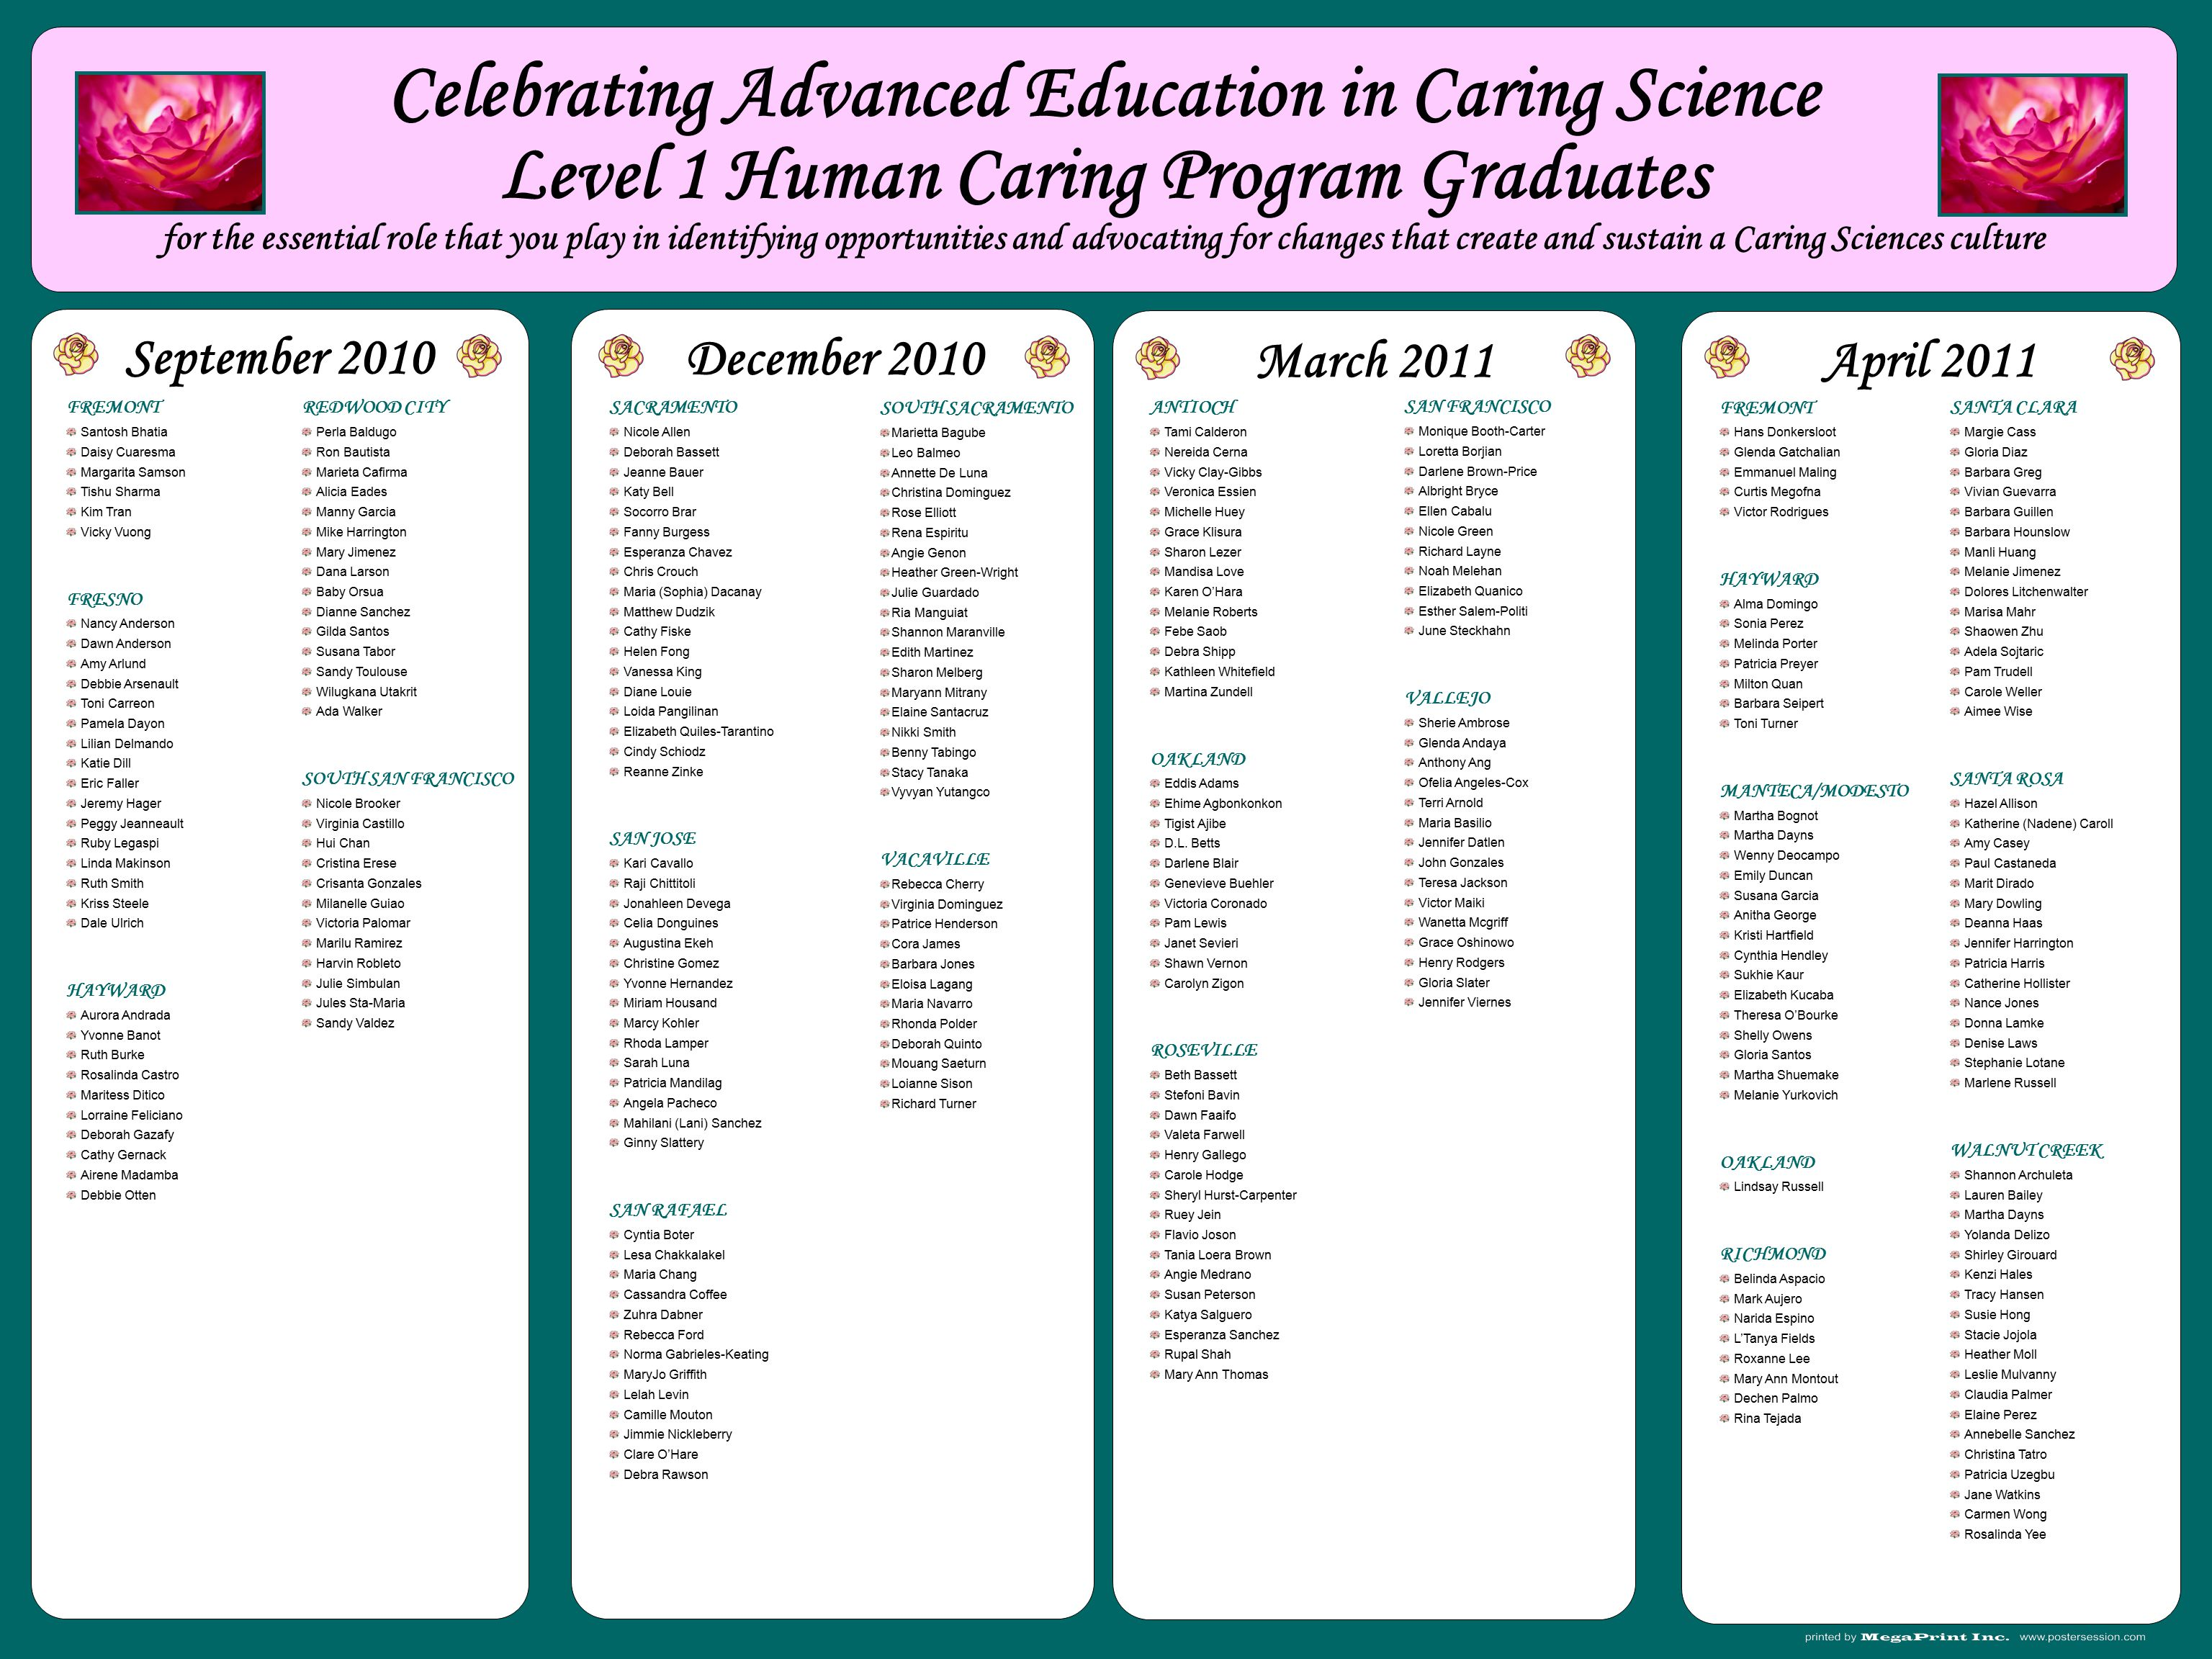 Celebrating Advanced Education in Caring Science Level 1 Human Caring Program Graduates for the essential role that you play in identifying opportunit